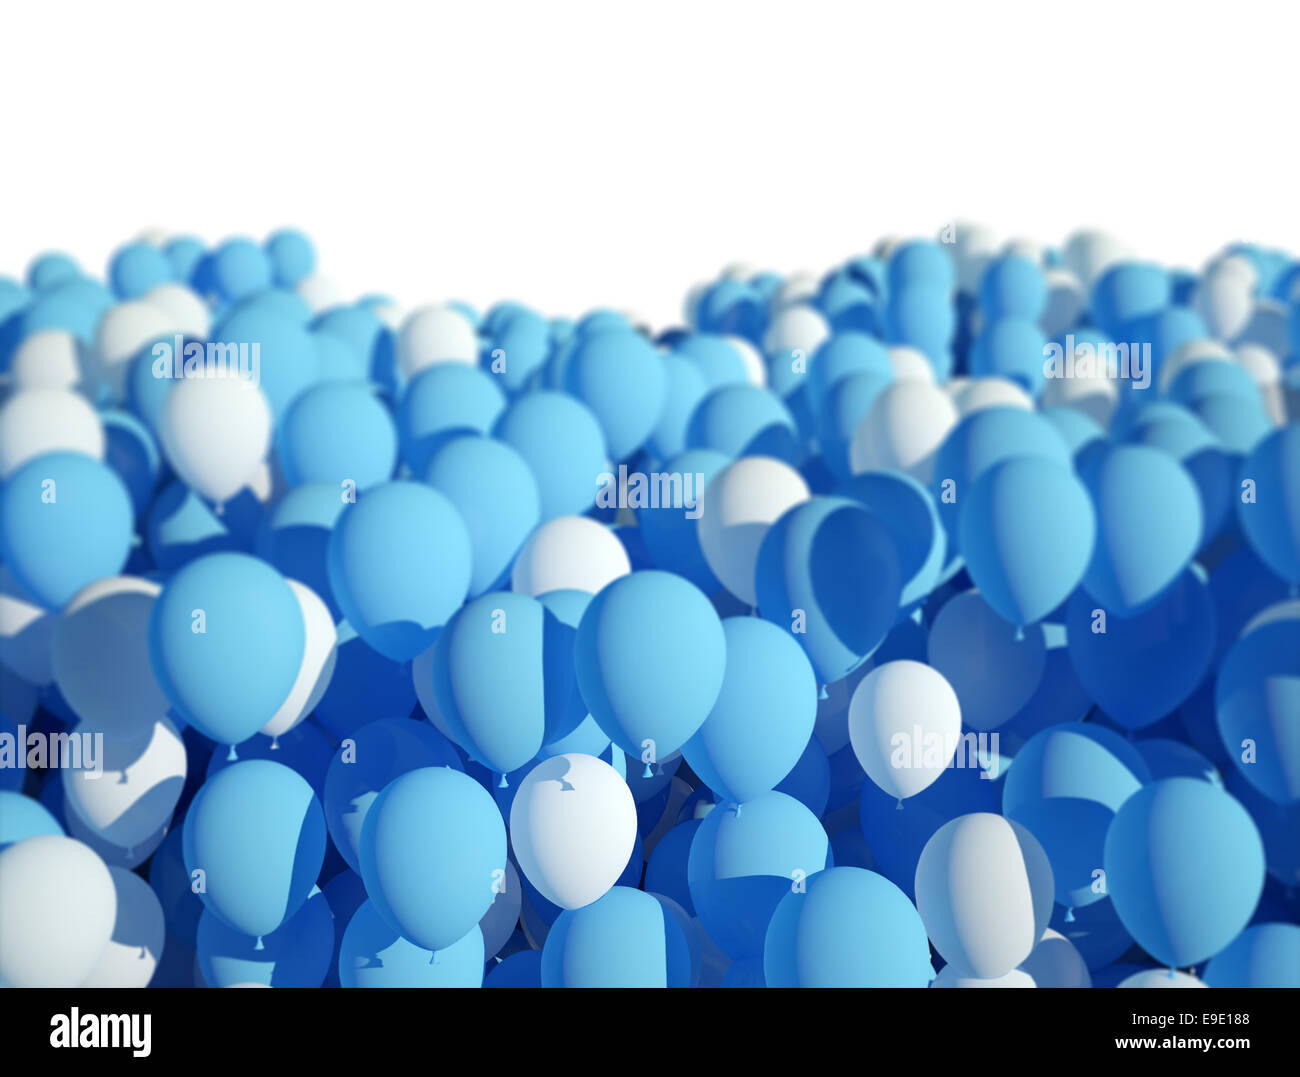 blue and white party balloons design background stock photo